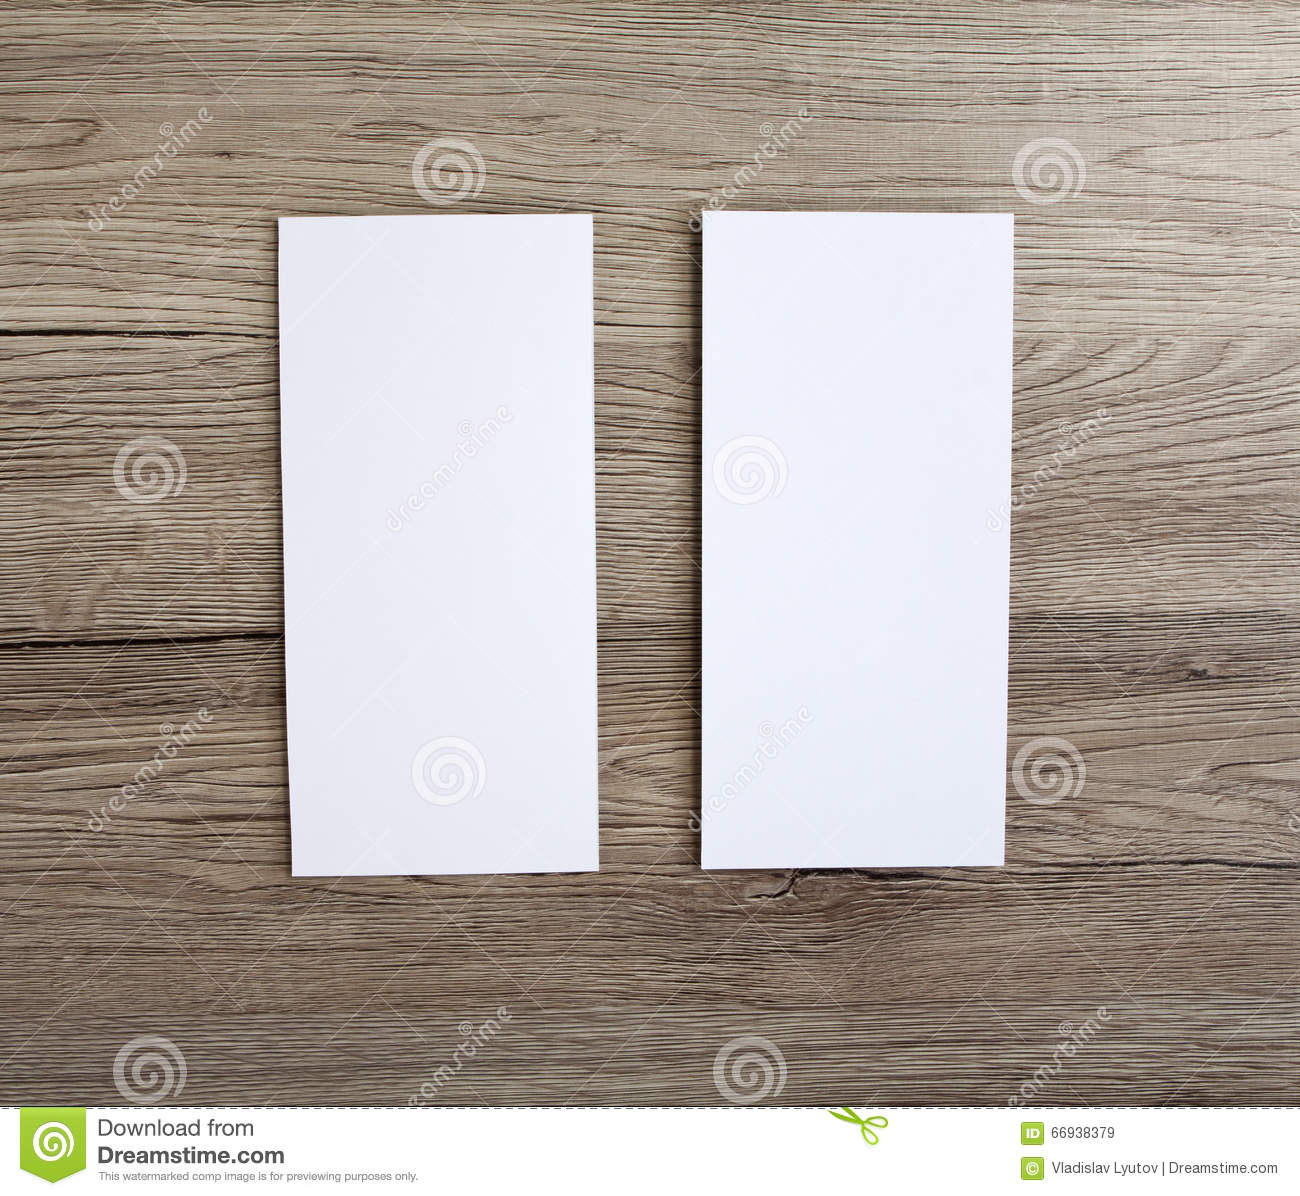 Blank flyer over wooden background to replace your design.